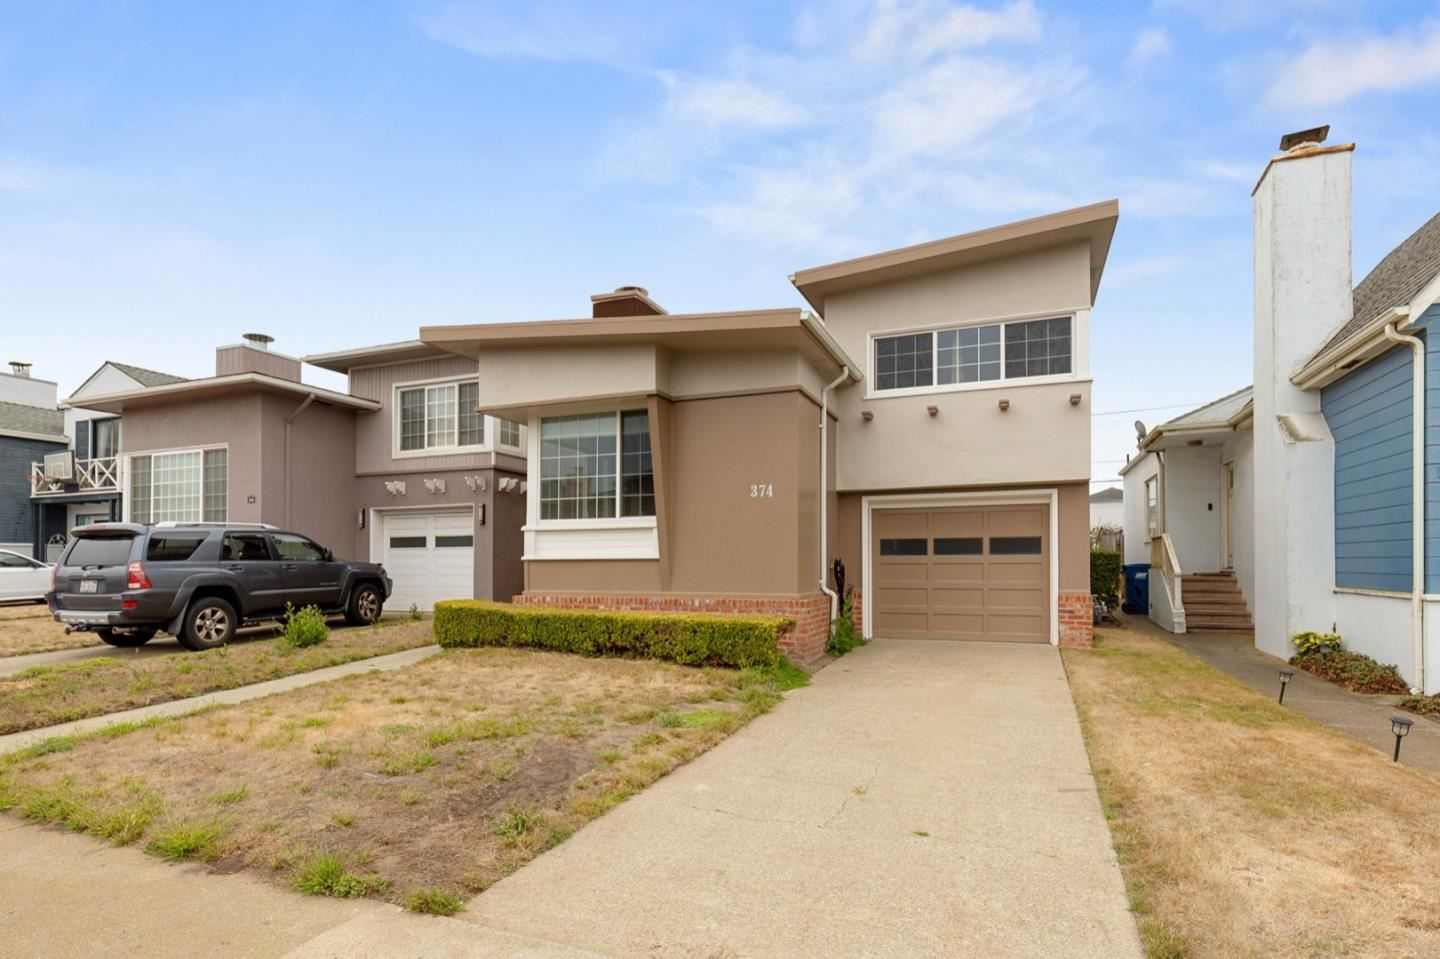 Photo for 374 Glenwood AVE, DALY CITY, CA 94015 (MLS # ML81803575)